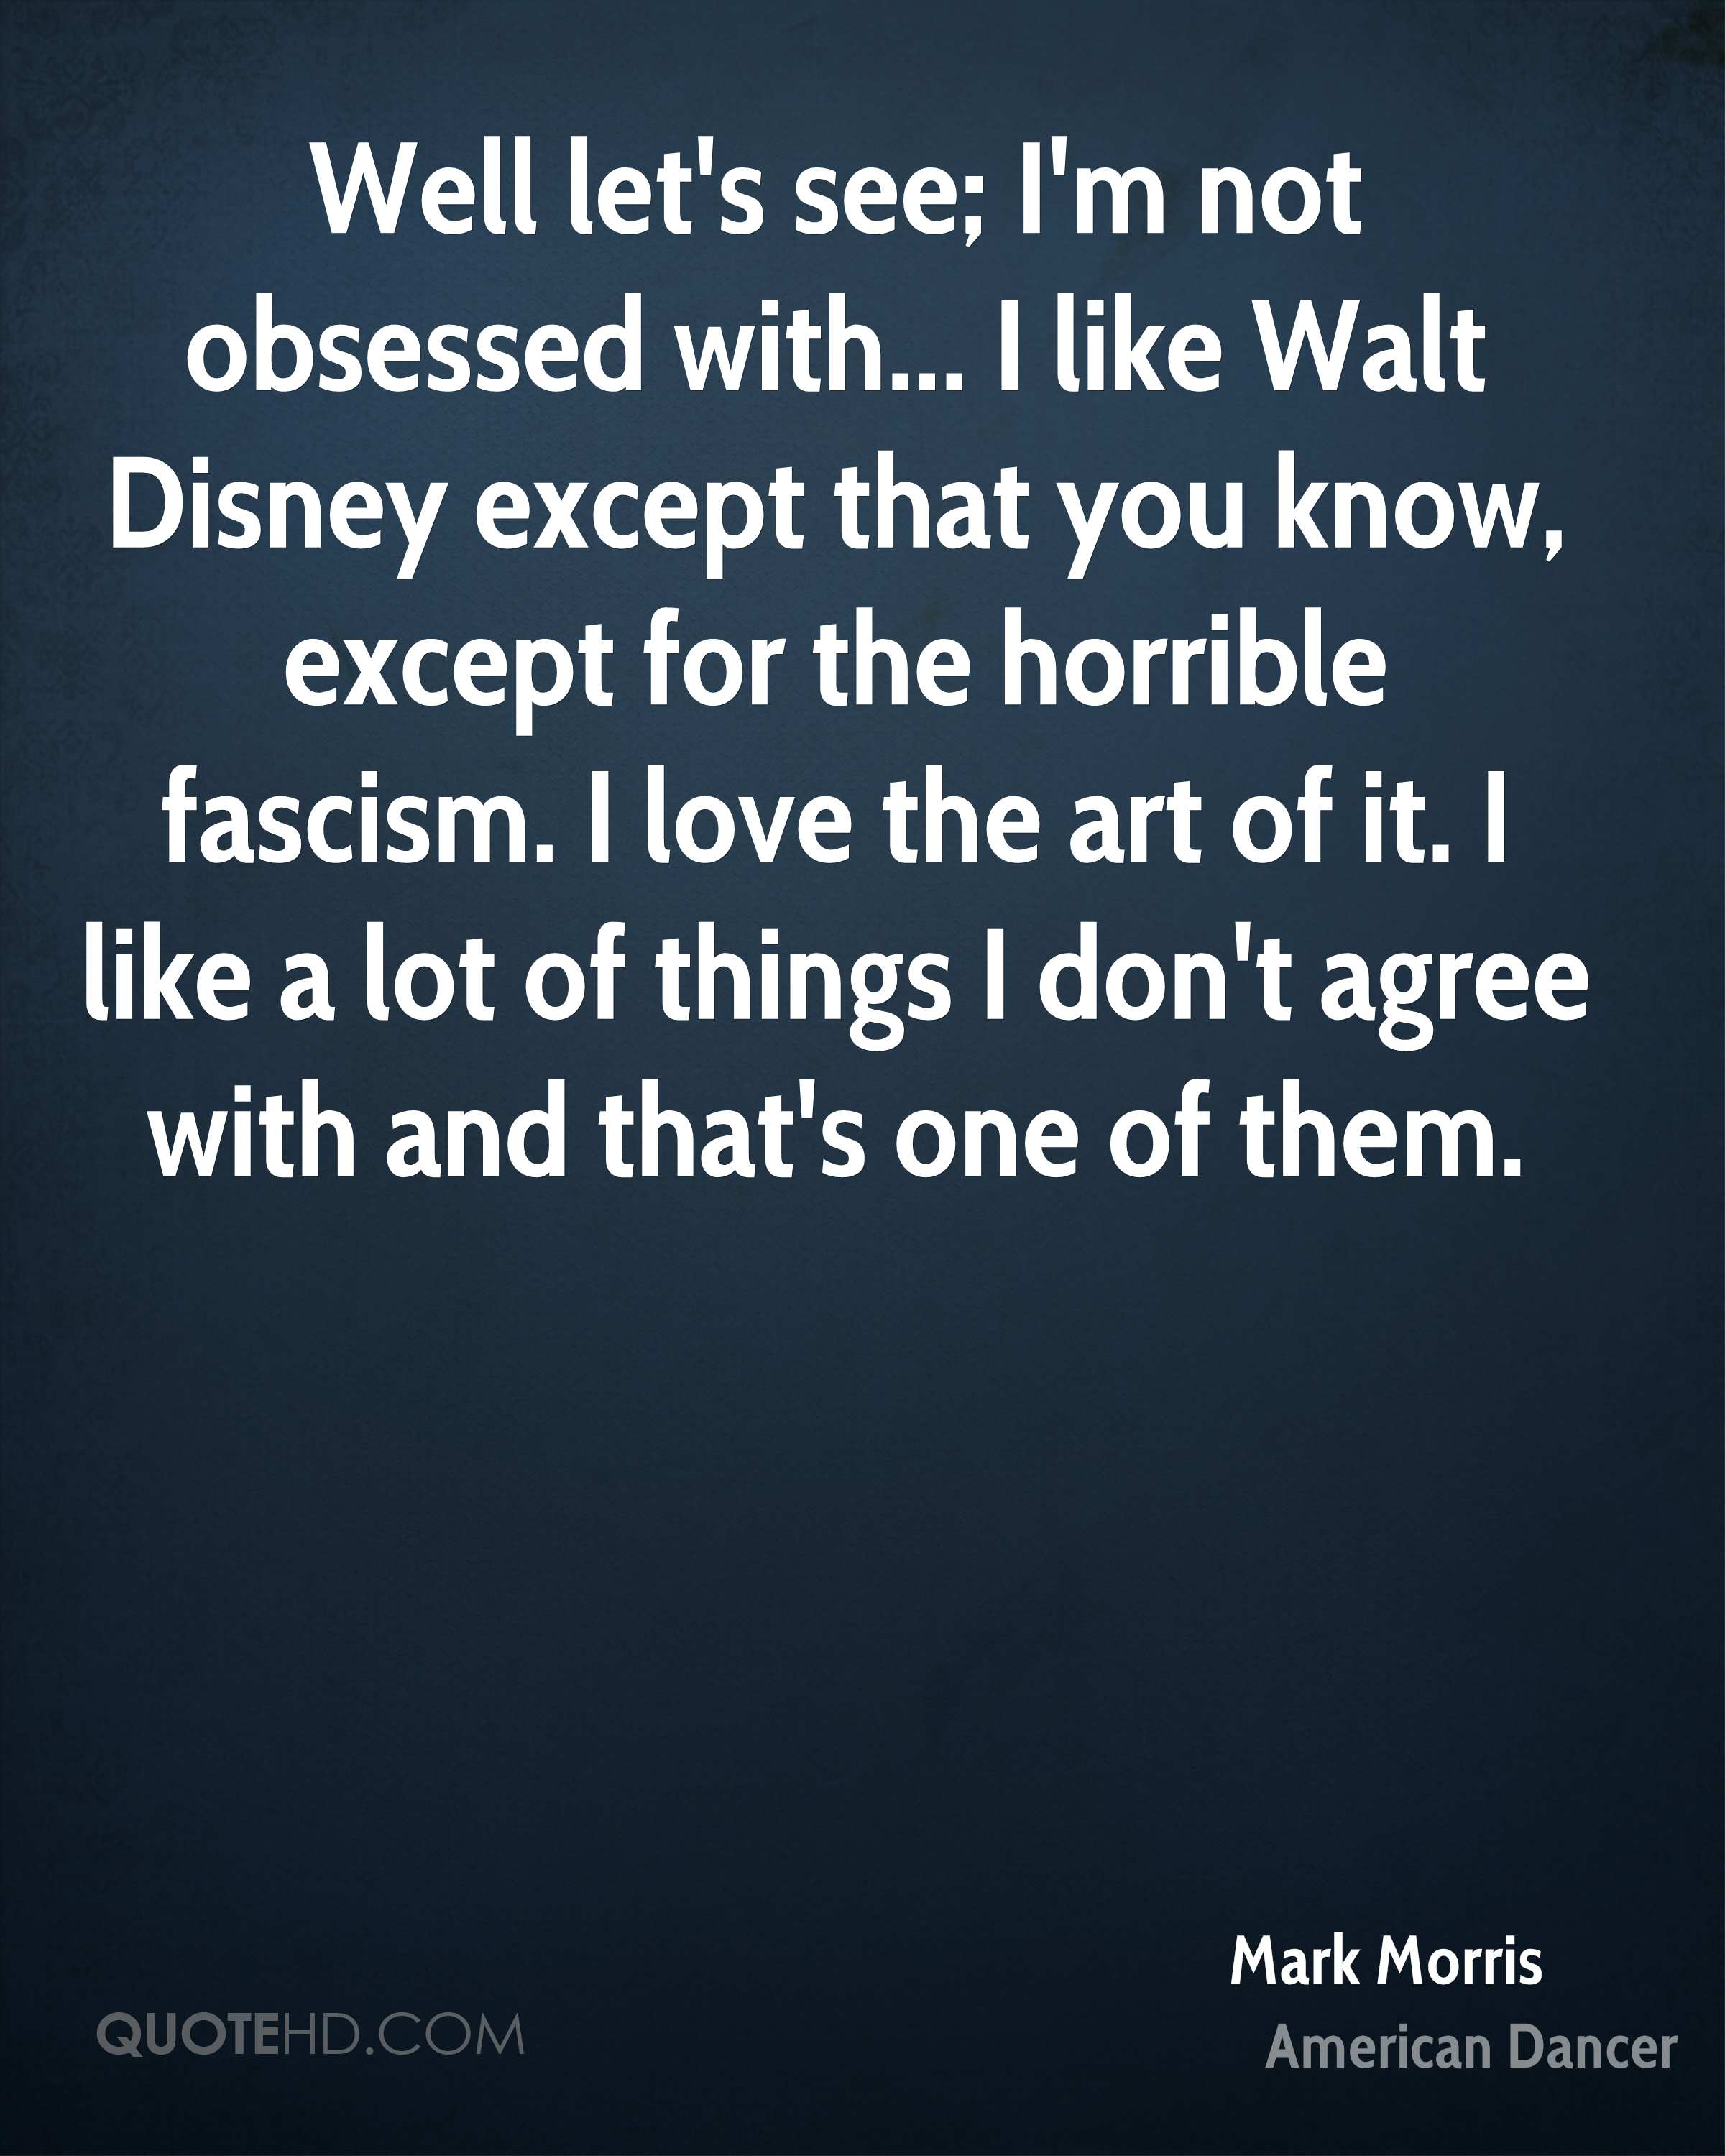 Well let's see; I'm not obsessed with... I like Walt Disney except that you know, except for the horrible fascism. I love the art of it. I like a lot of things I don't agree with and that's one of them.